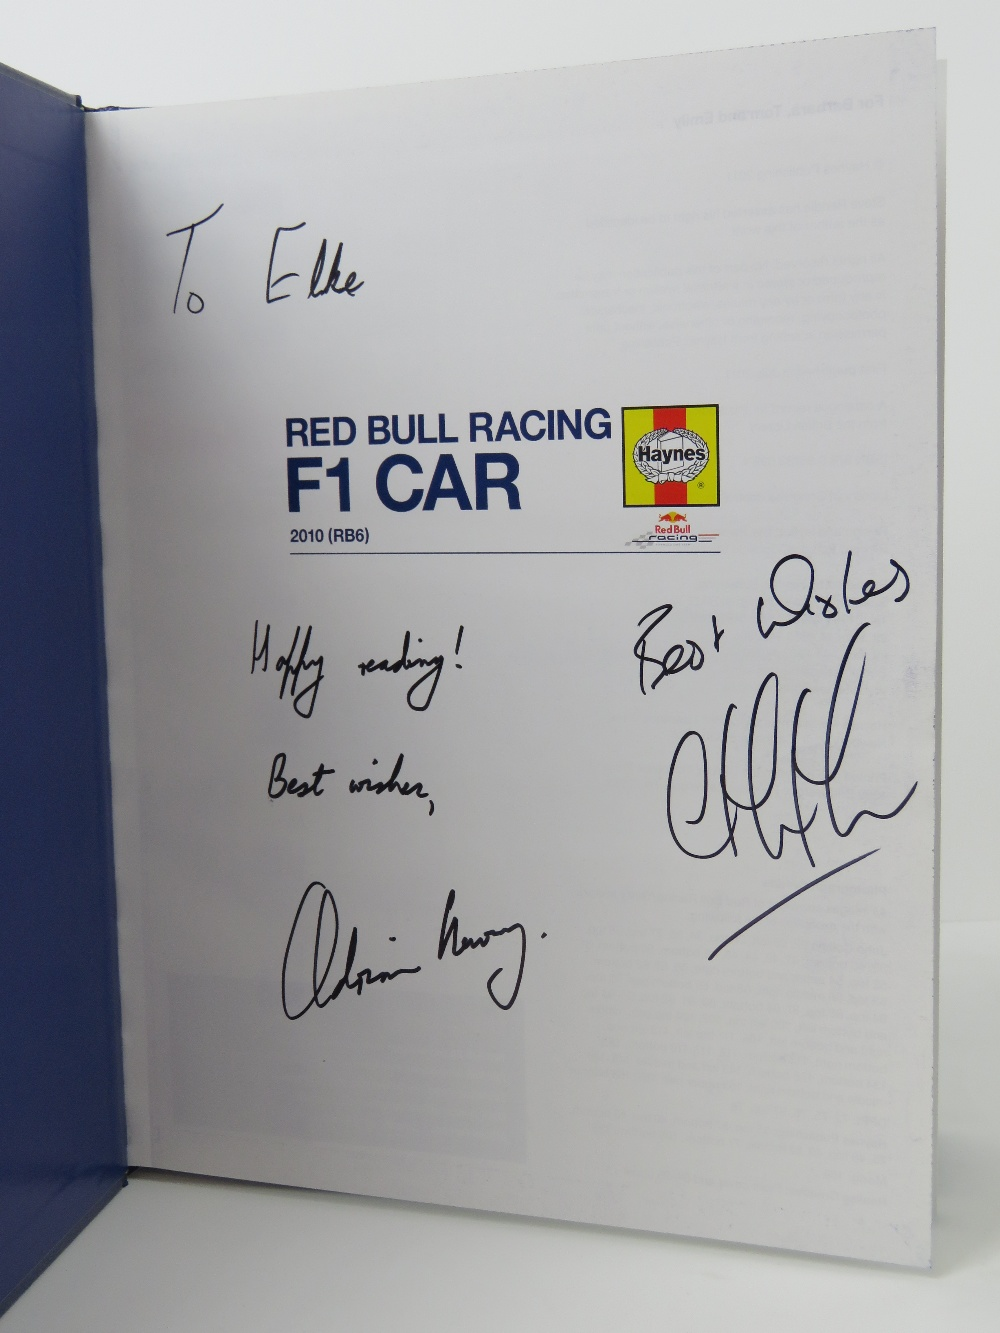 Lot 106 - Haines Owner Workshop Manual - Red Bull